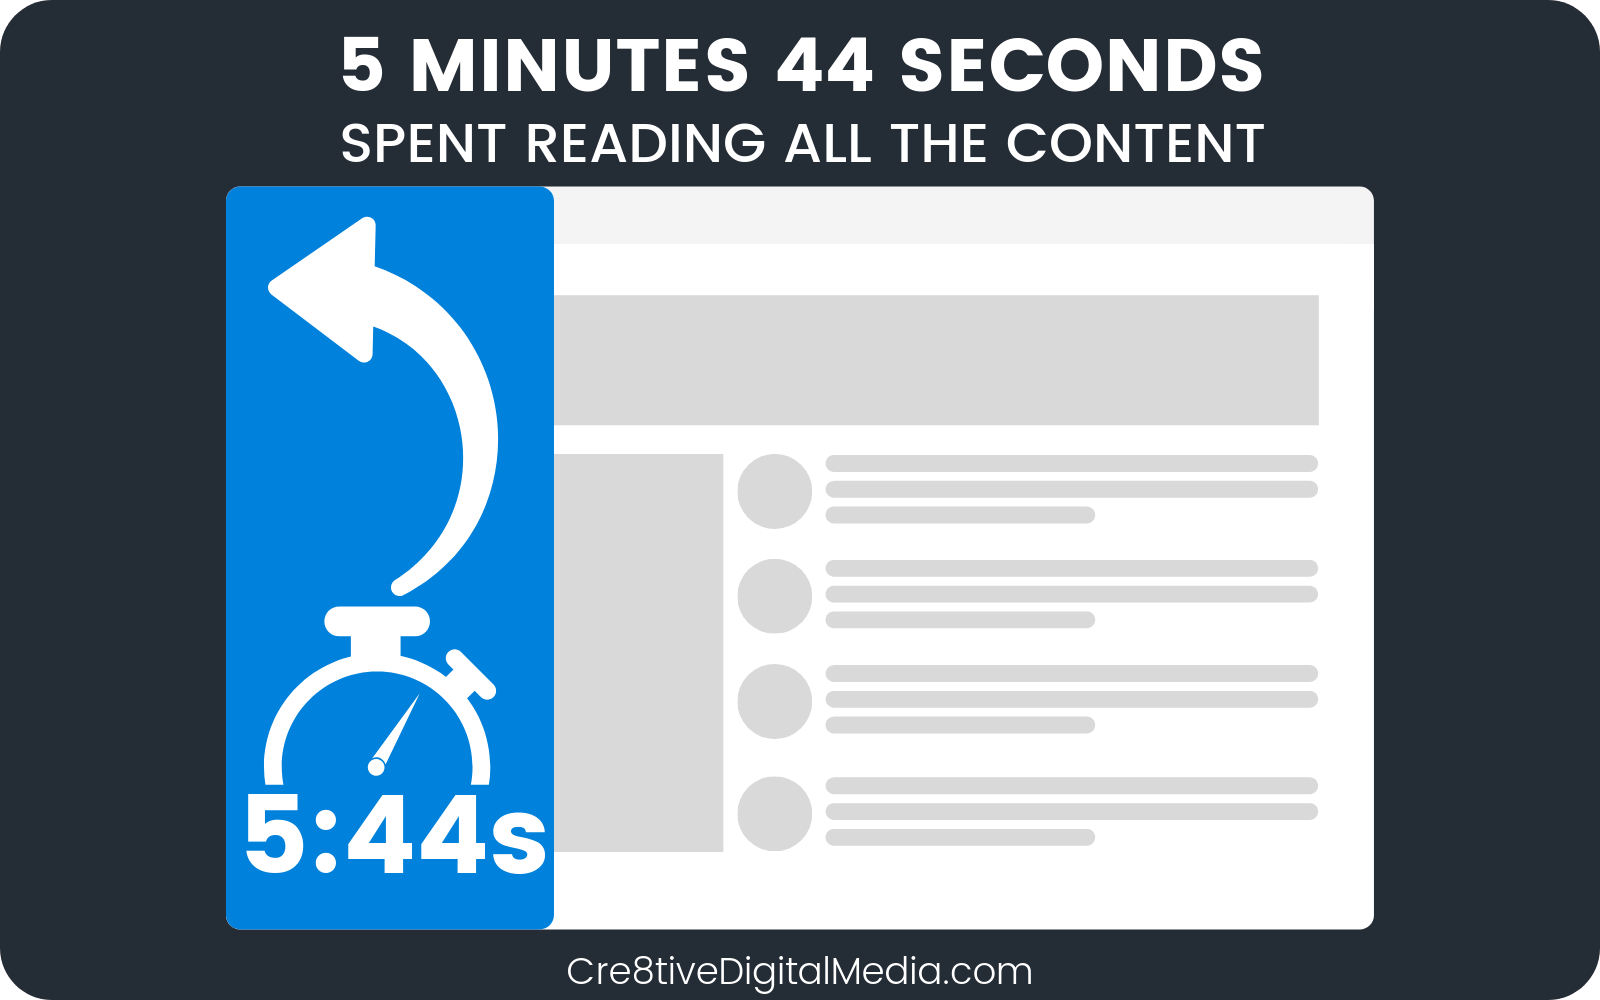 5 Minutes 44 Seconds spent reading all the content